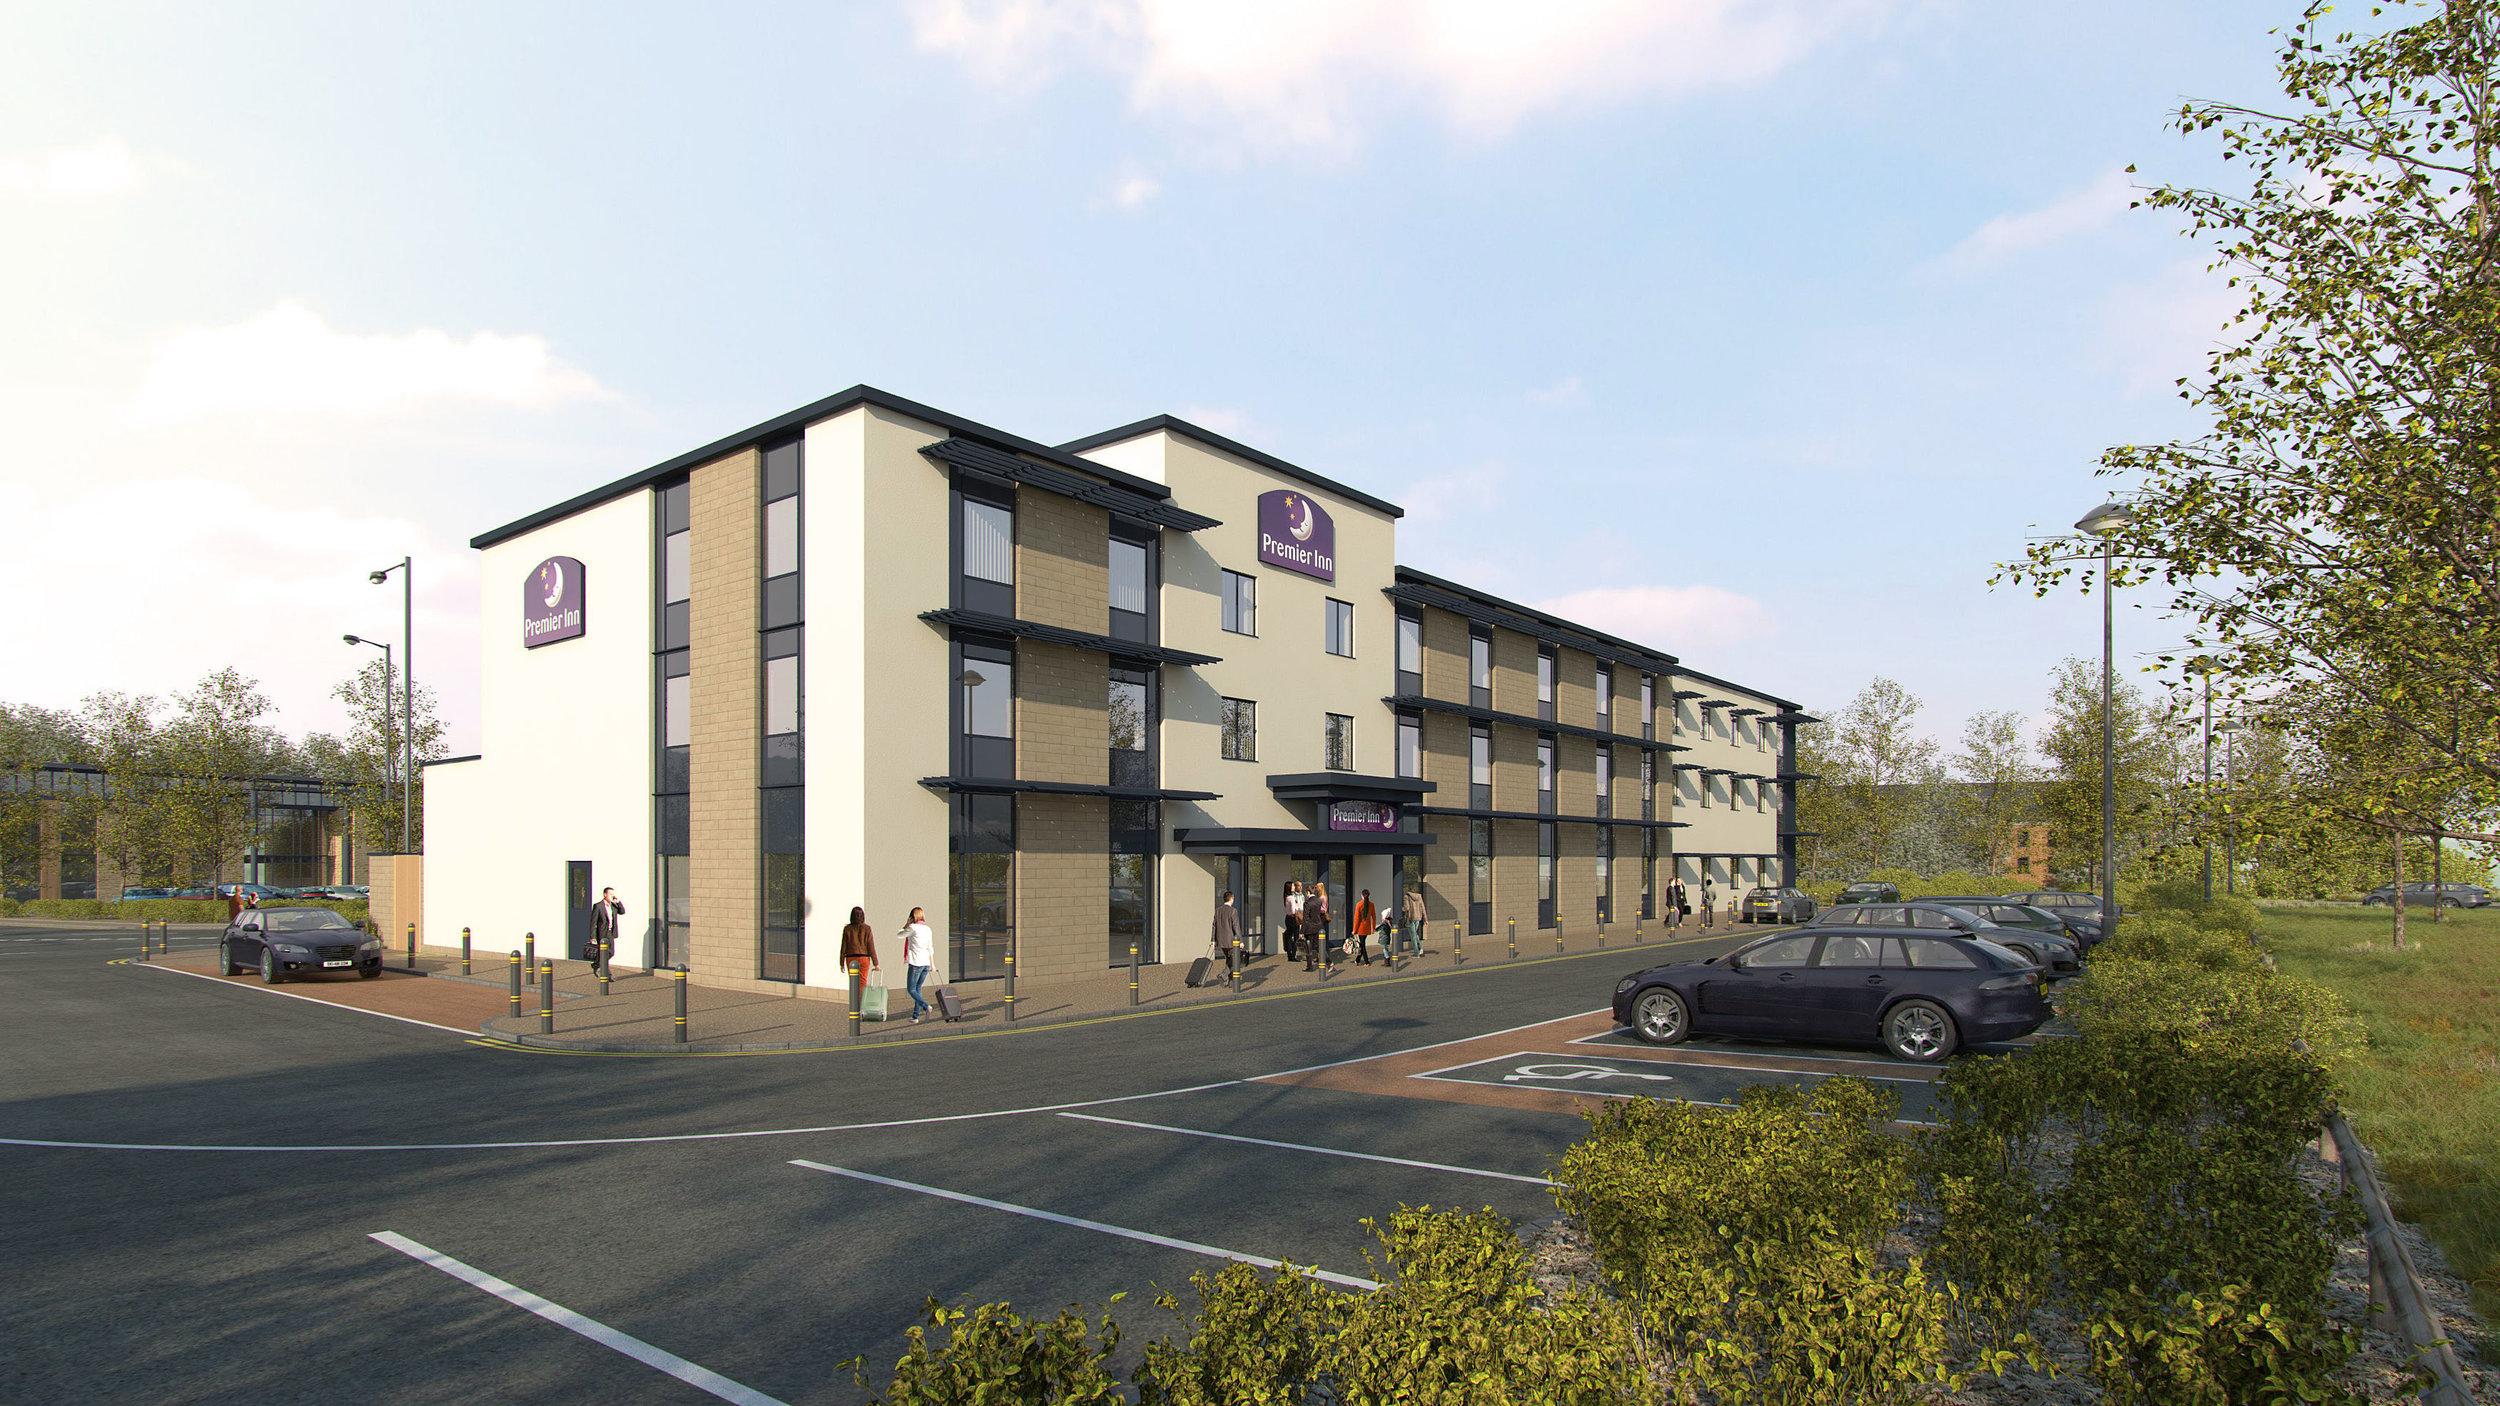 Arch-e-tech_Design_Ltd_Premier-Inn_Wells-04.jpg